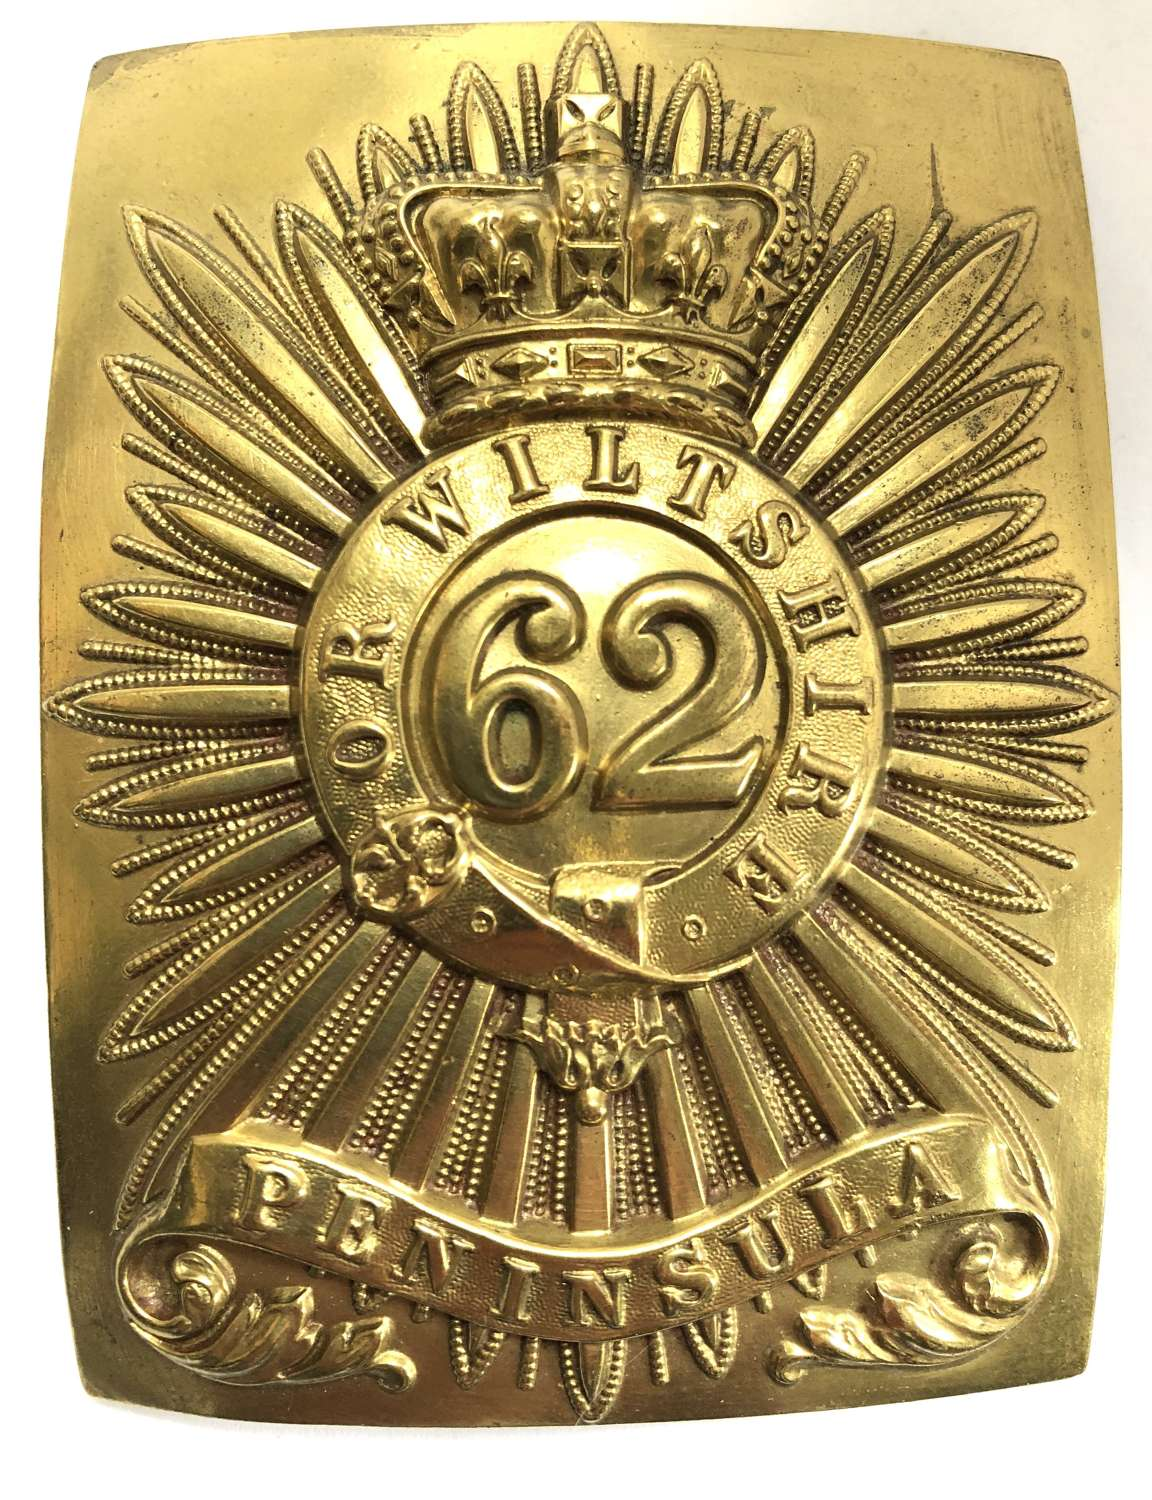 62nd (Wiltshire) Regiment of Foot Crinean War shoulder belt plate